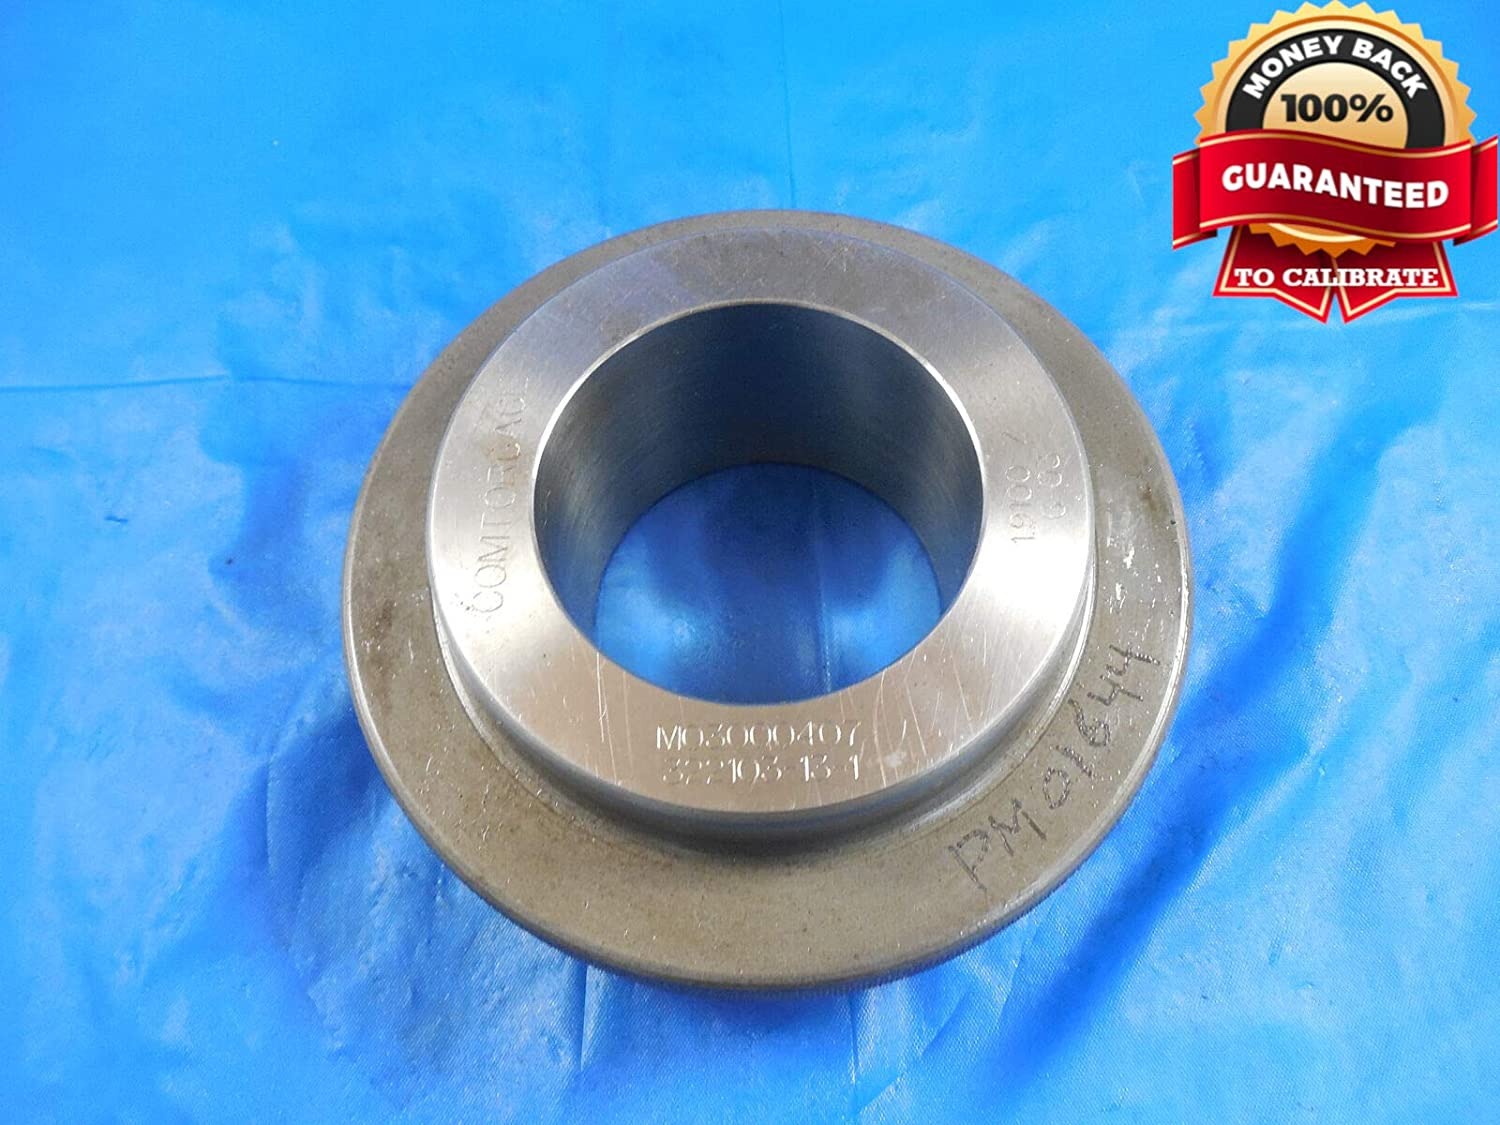 1.9100 Class Z Master BORE Ring GAGE 1.9063 +.0037 Oversize 1 29/32 48.514 mm